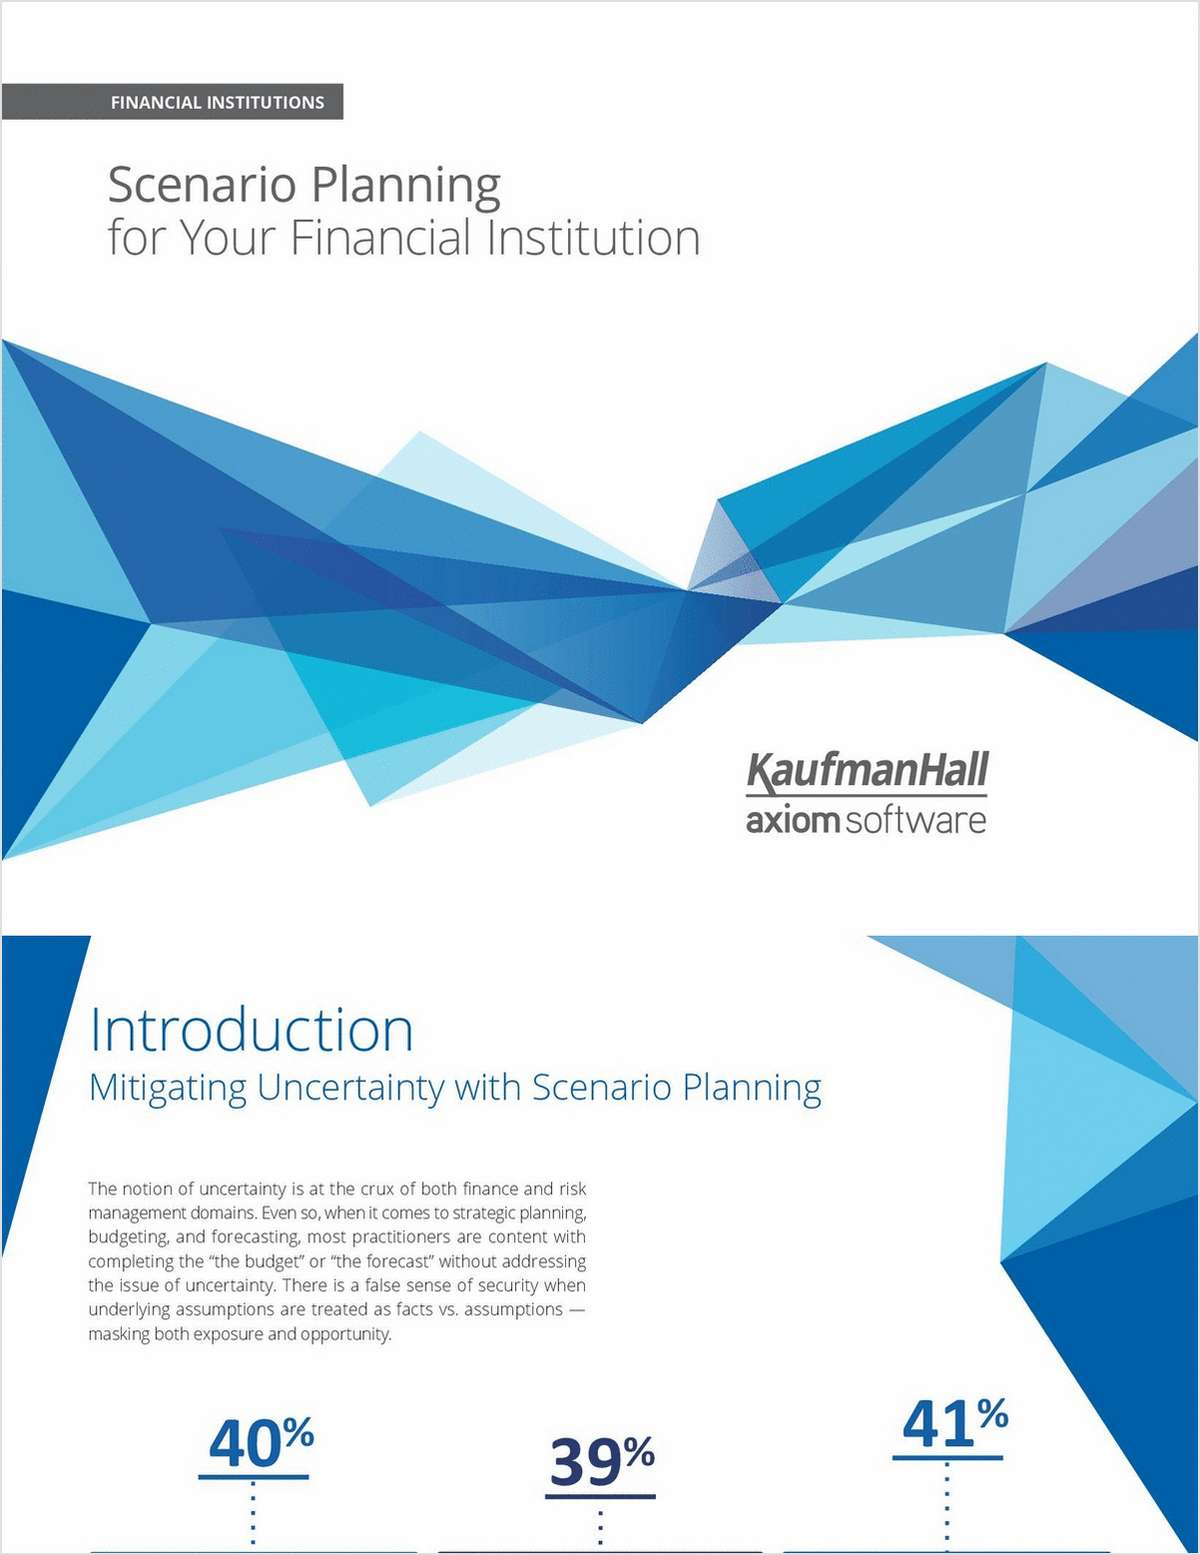 Scenario Planning: How to Mitigate Uncertainty for Your Credit Union